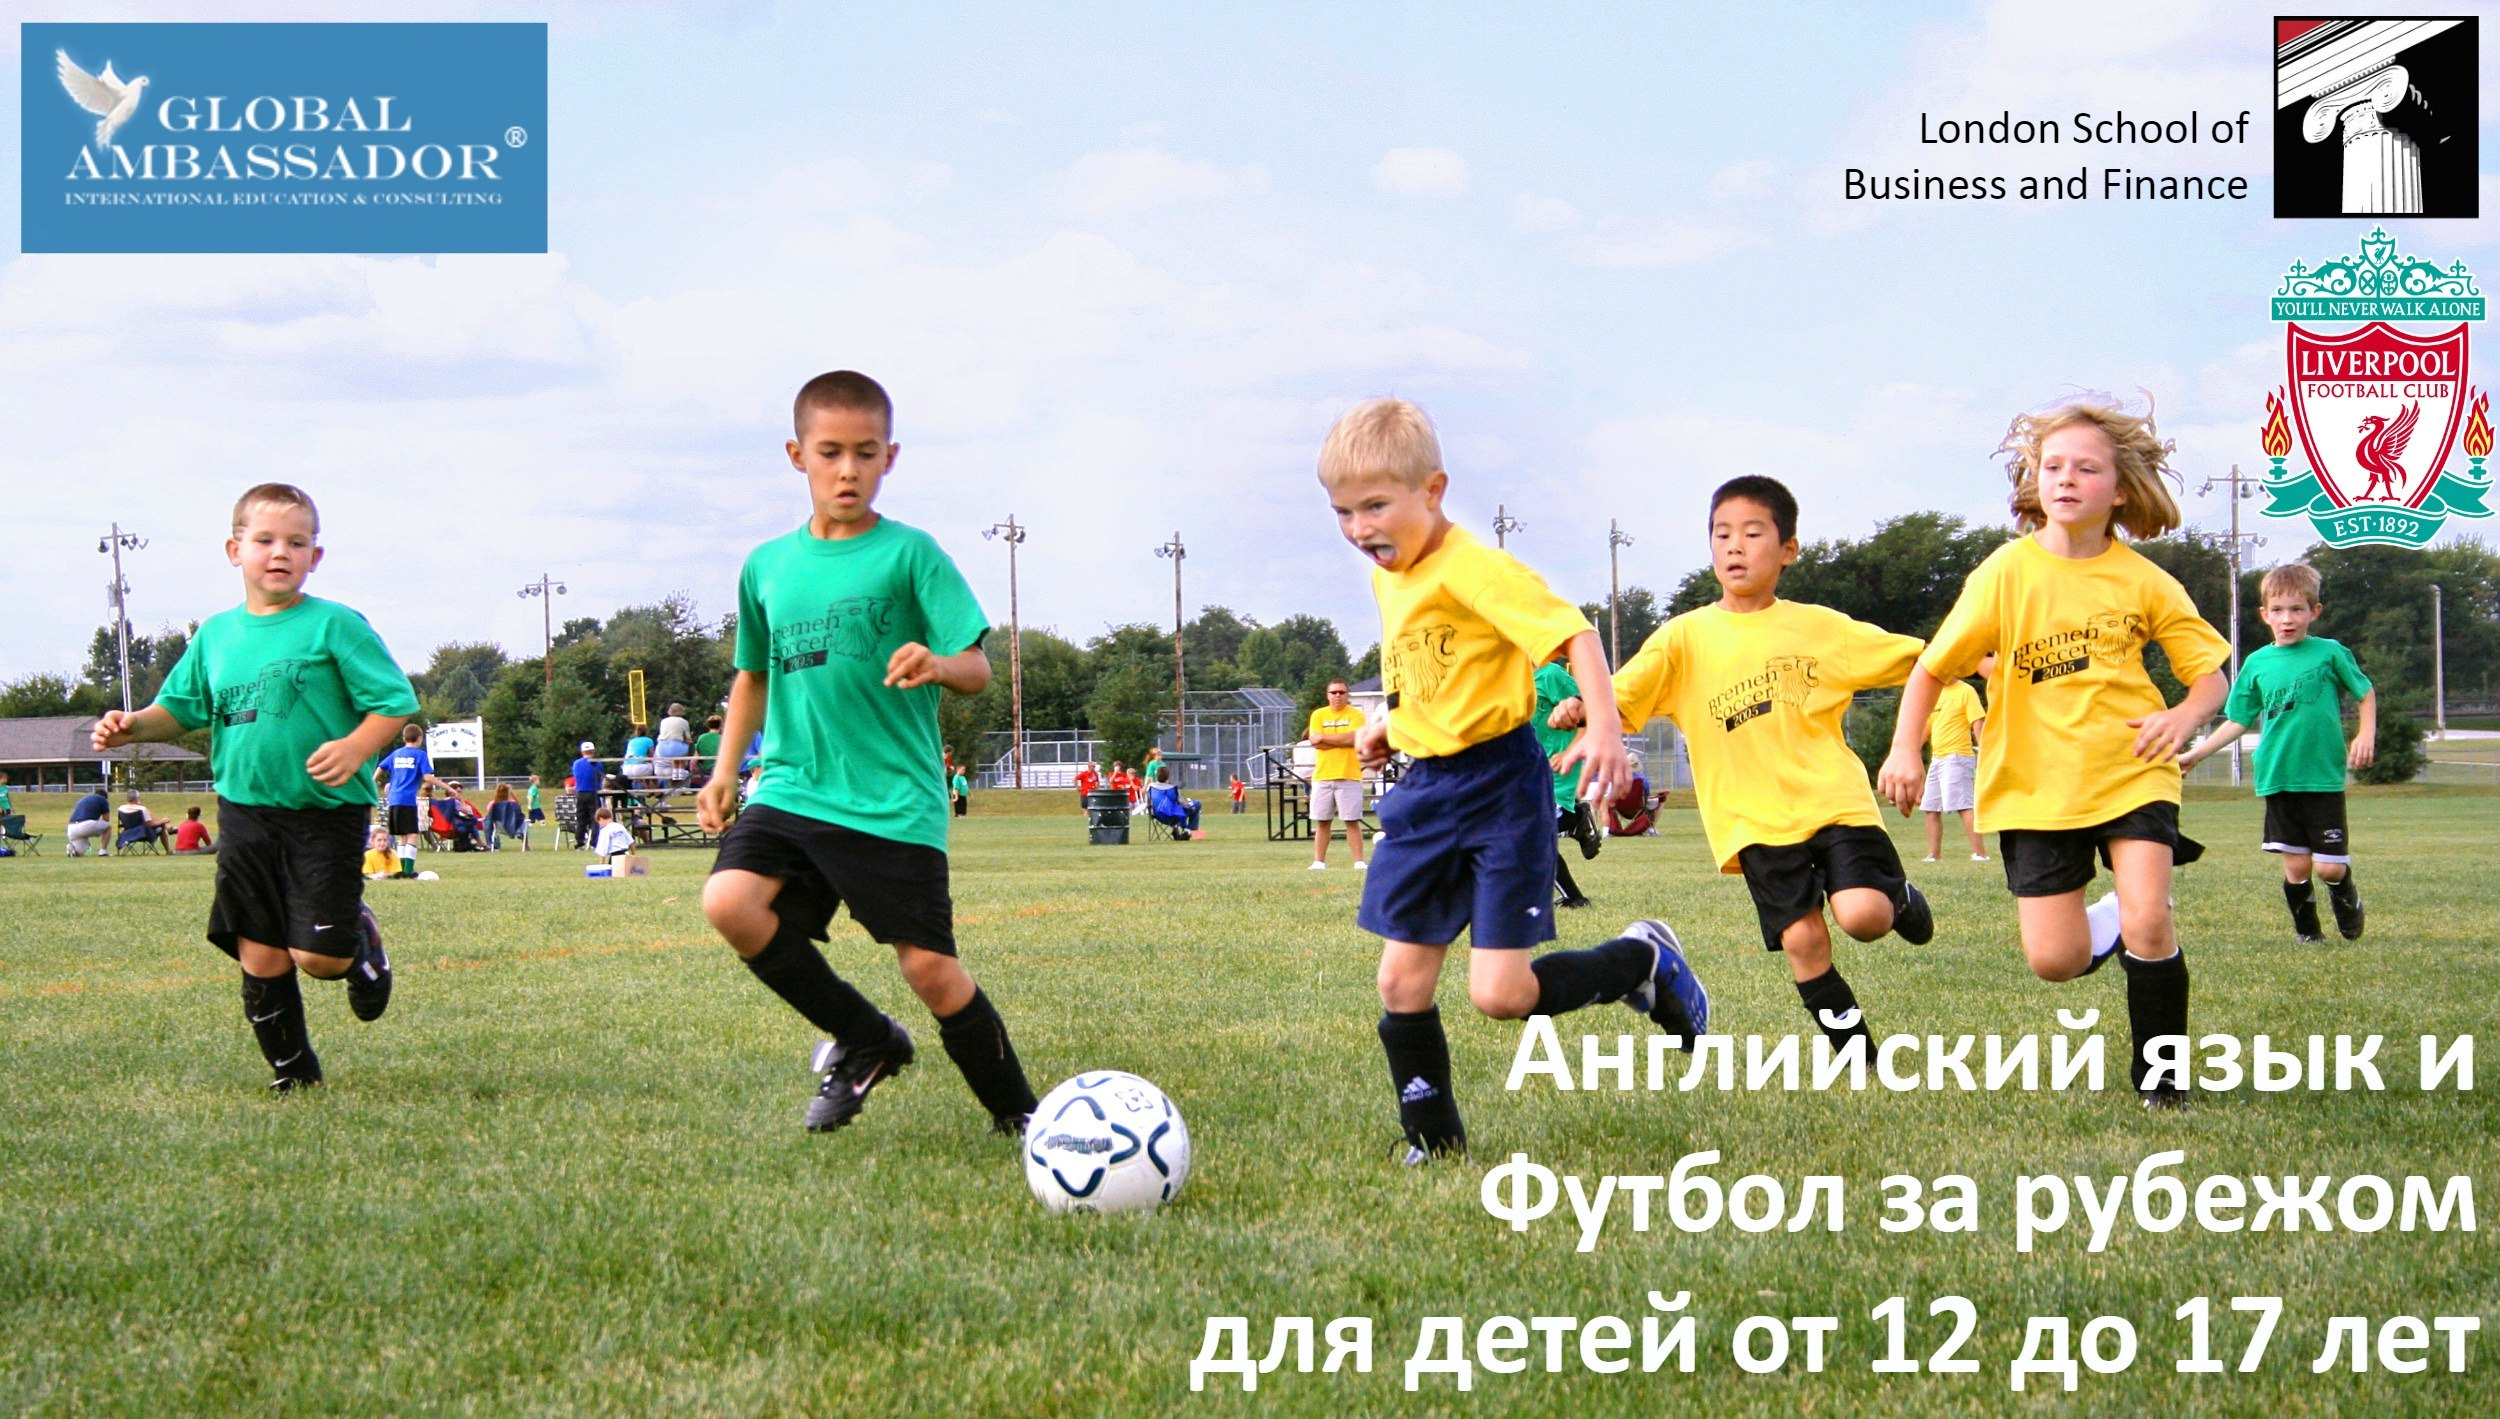 Young-Persons-Football-Match-Background2